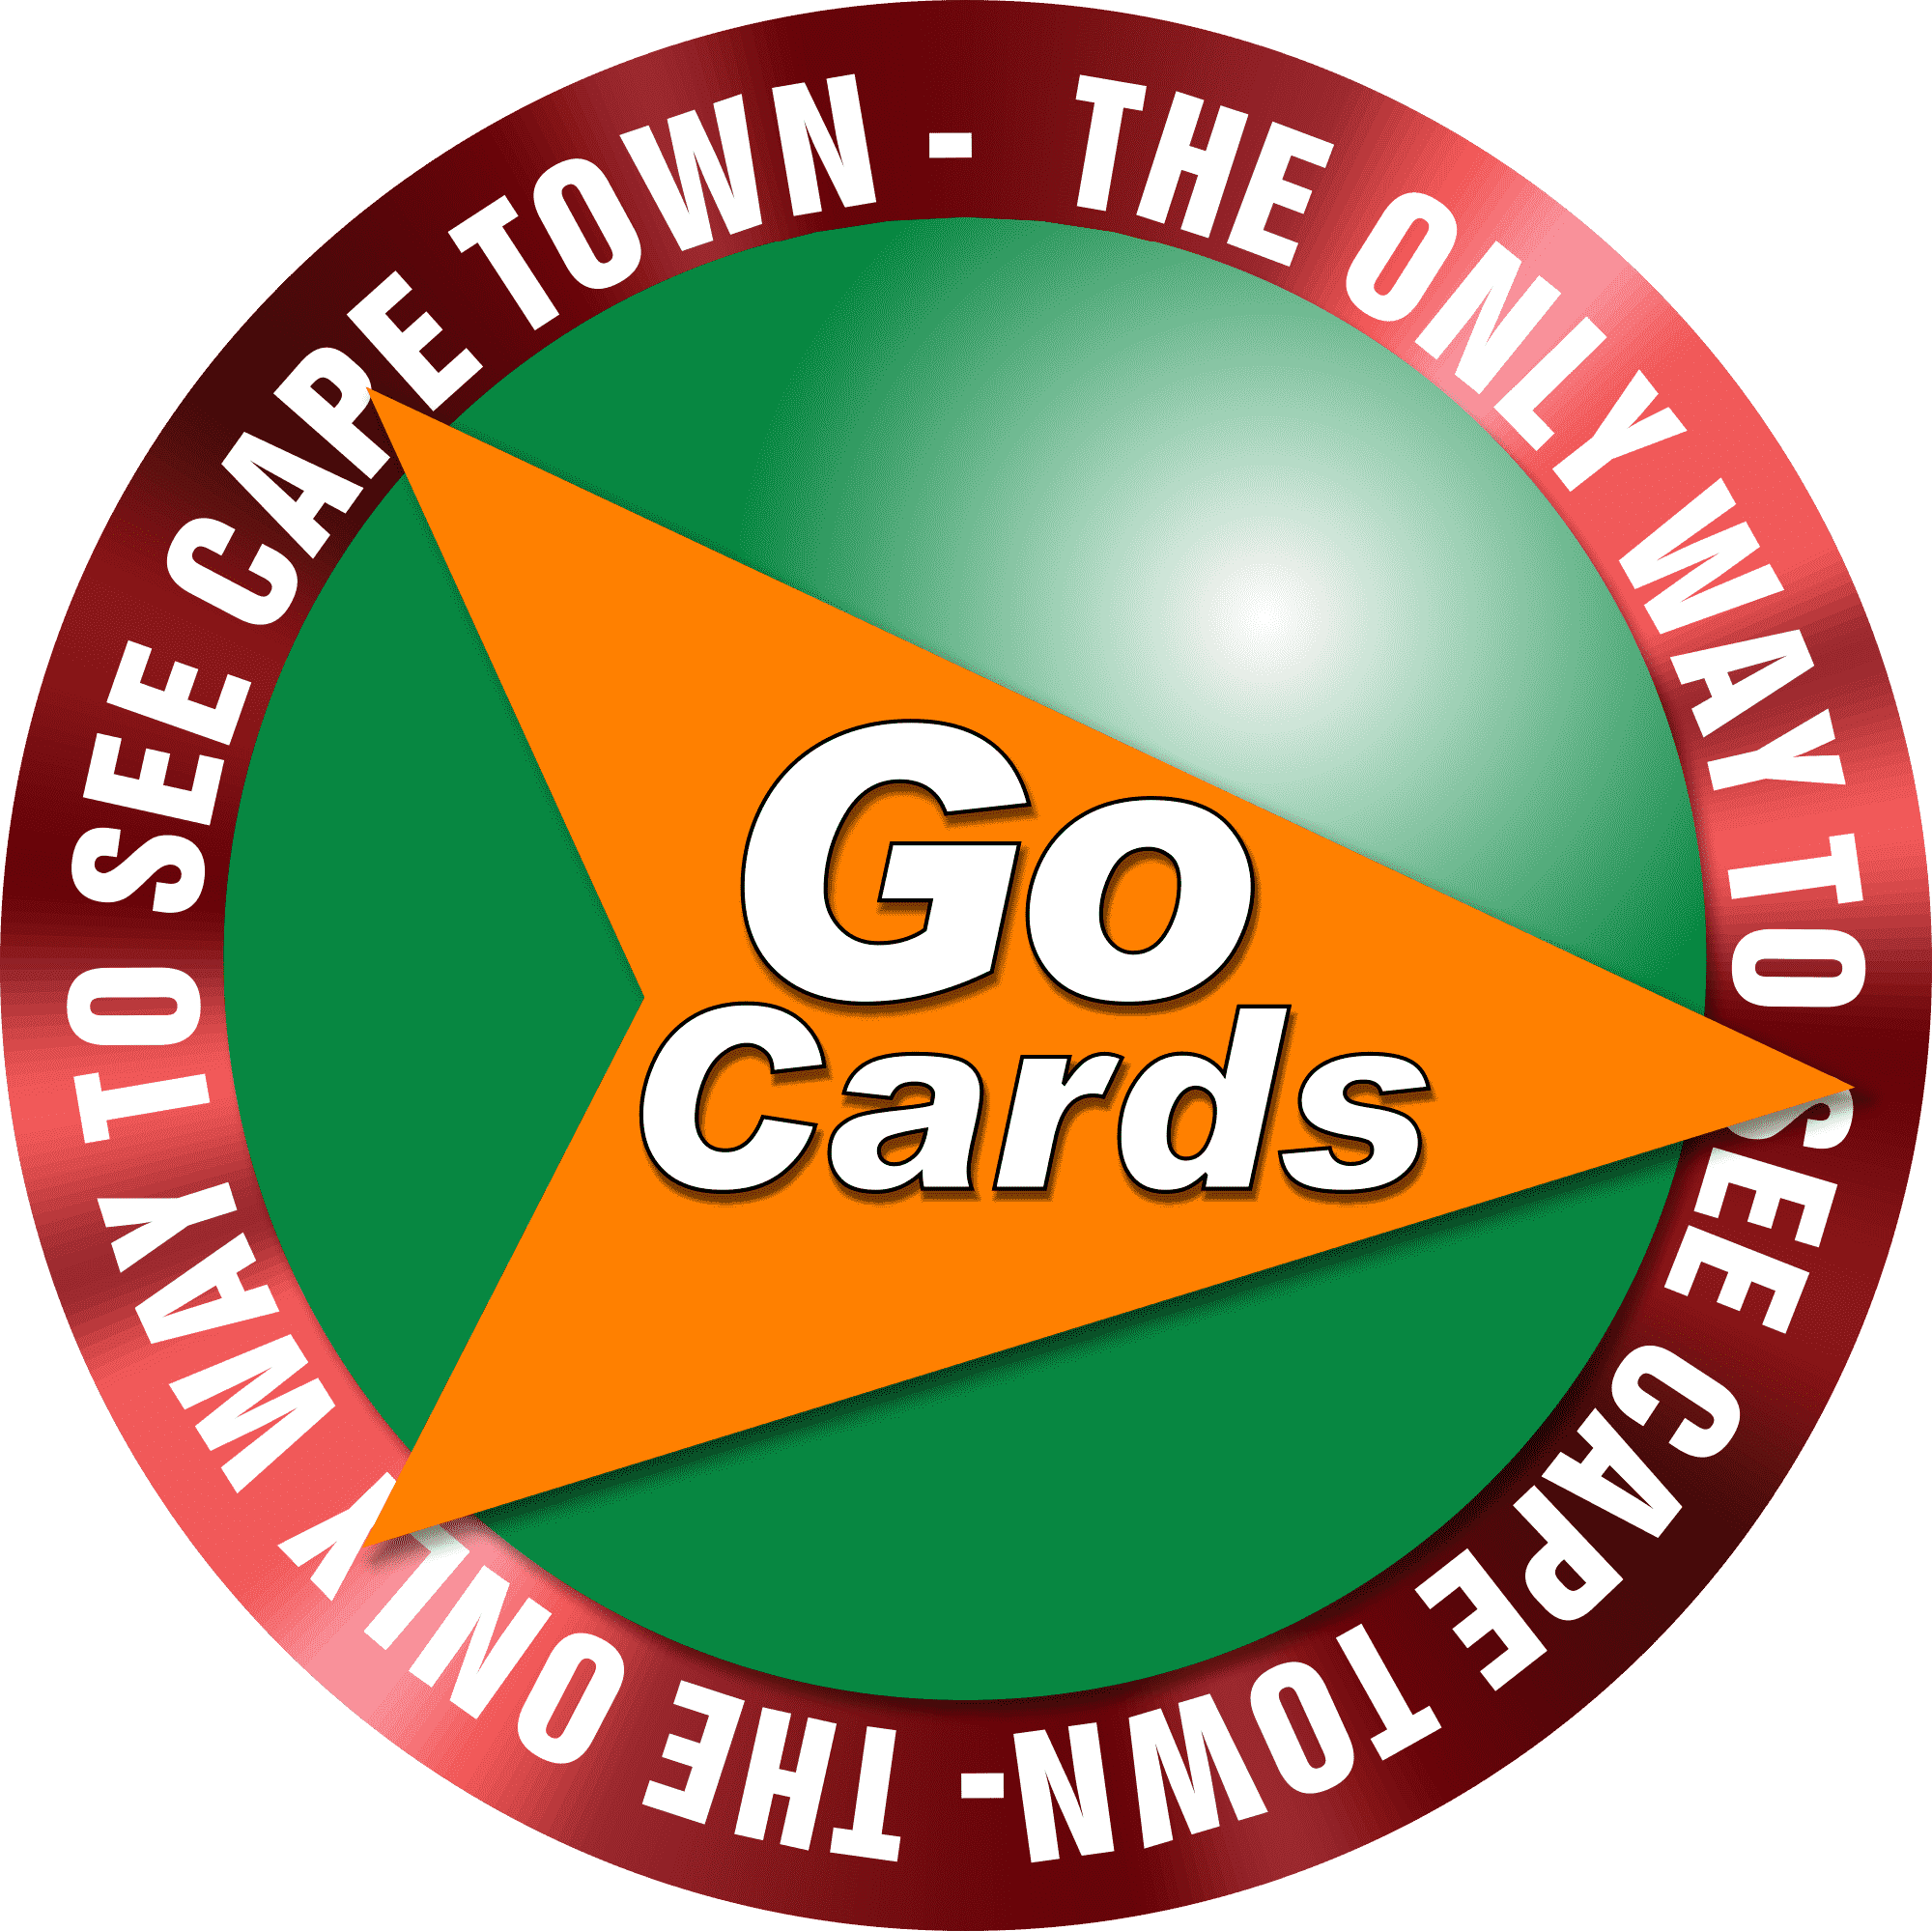 Cape town go pass by using this ingenious card scheme cape town on the go provides you with great cape town deals for tourism attractions wildlife safaris and brilliant reheart Image collections